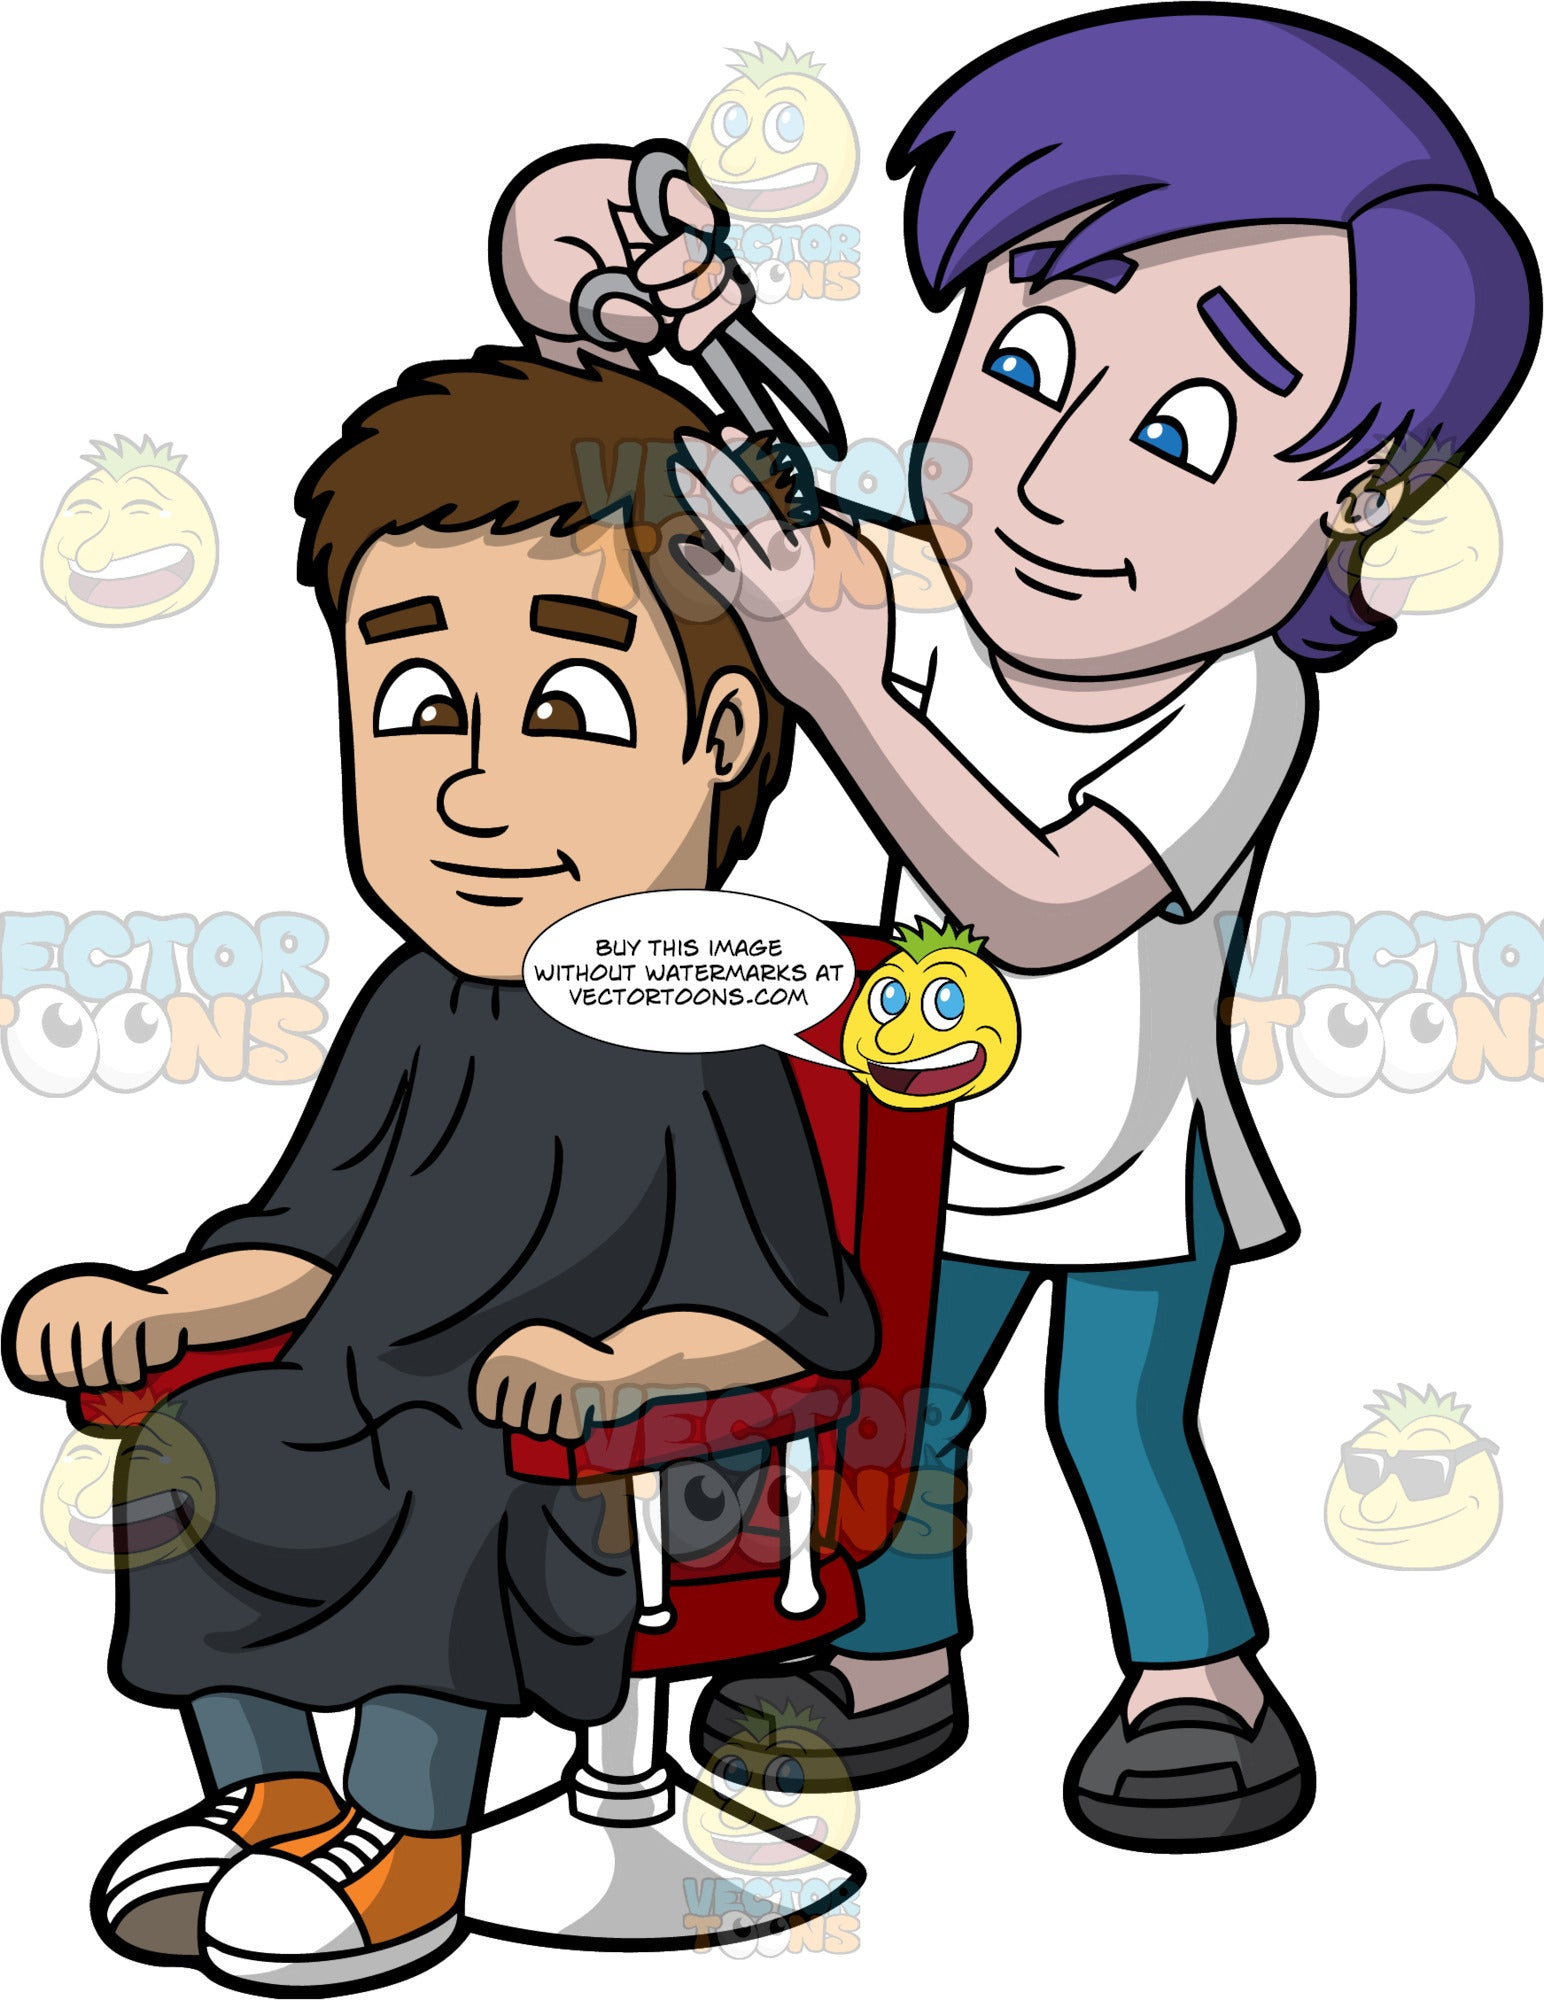 A Male Hairdresser Cutting The Hair Of A Guy. A male hairdresser with purple hair, wearing a white shirt, teal pants, black shoes, cutting the brown hair of a man who is sitting on a red with white salon chair, wearing a black salon cape gown, dark gray pants, orange with white shoes, using a pair of gray scissors